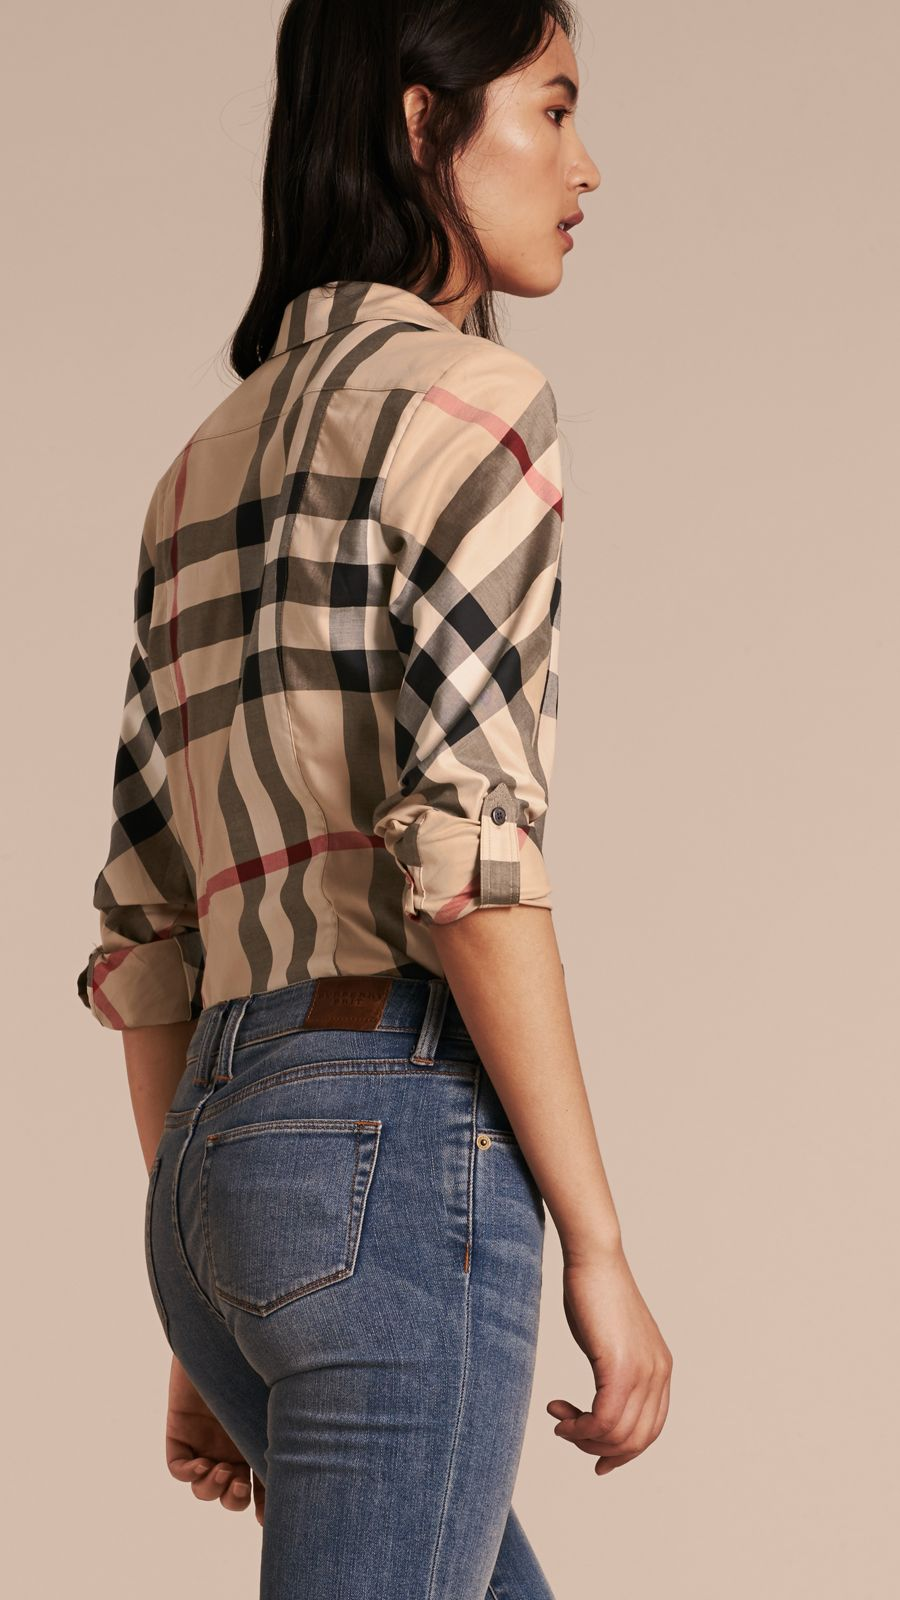 New classic check Stretch-Cotton Check Shirt - Image 3